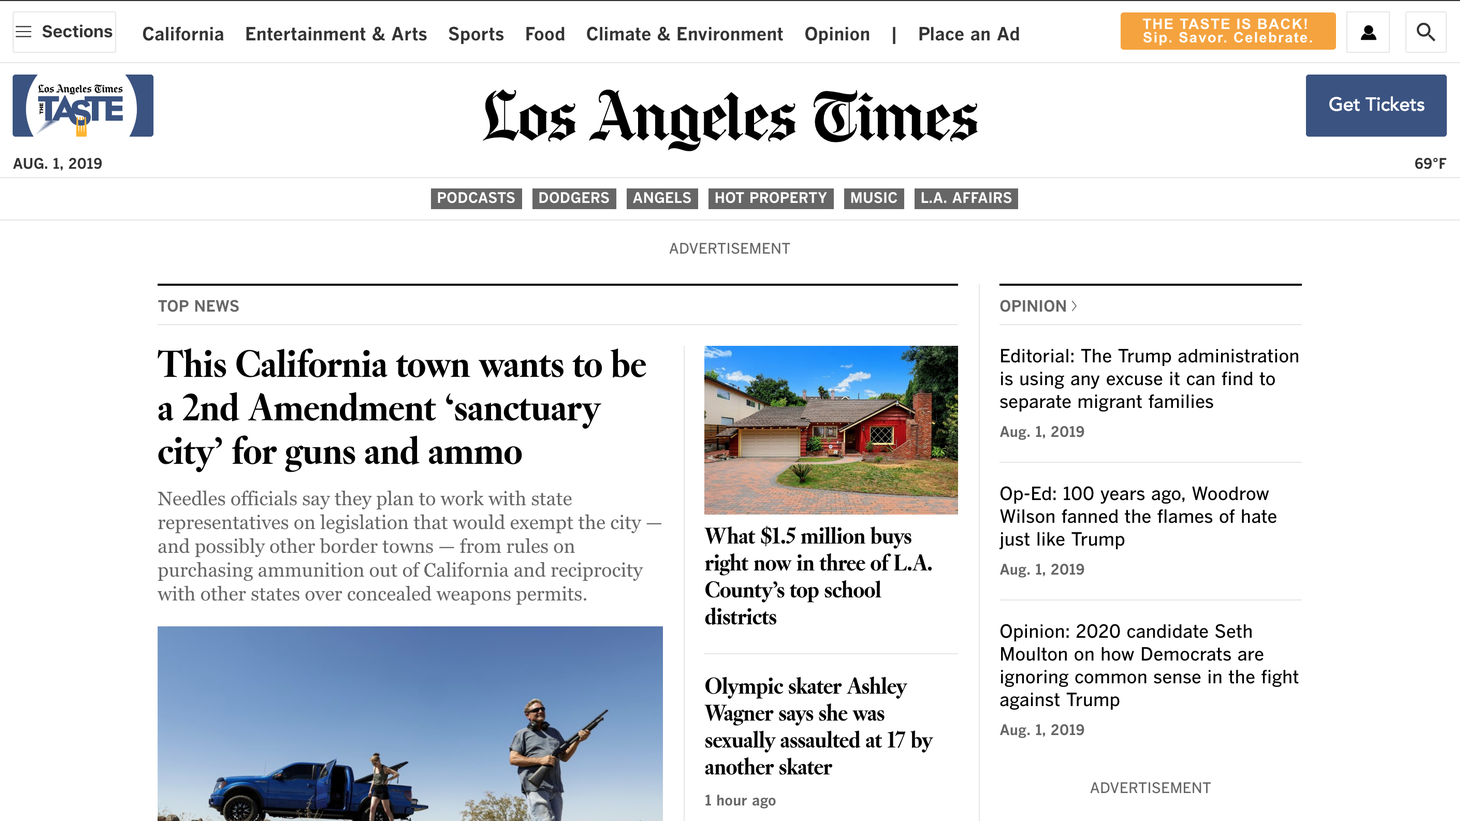 A screenshot of the latimes.com homepage on August 1, 2019, 10:29 AM.